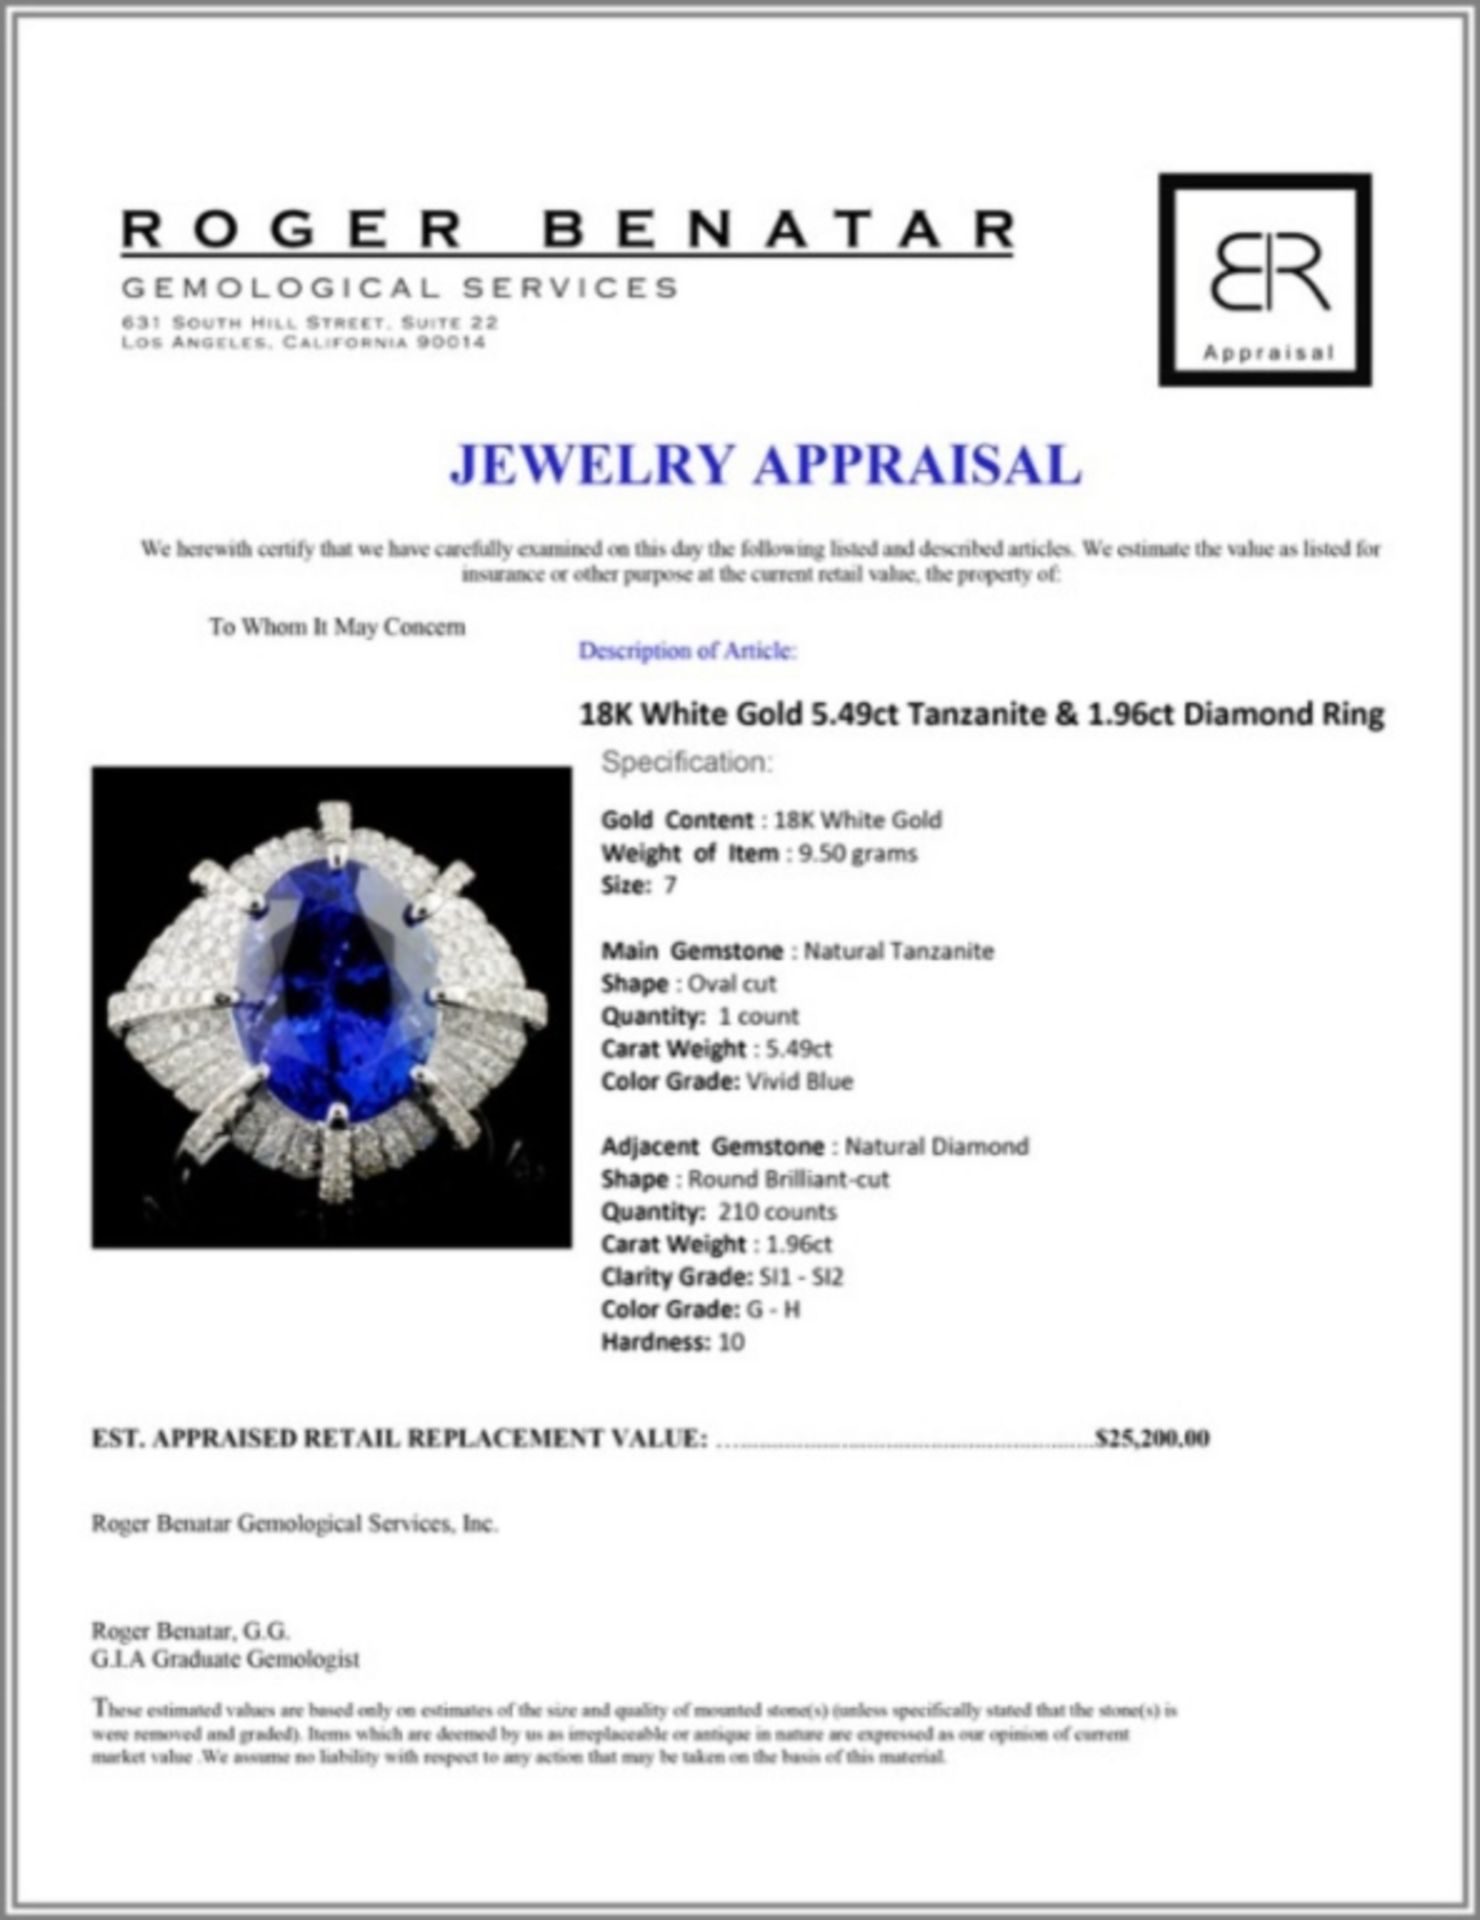 18K White Gold 5.49ct Tanzanite & 1.96ct Diamond R - Image 4 of 4